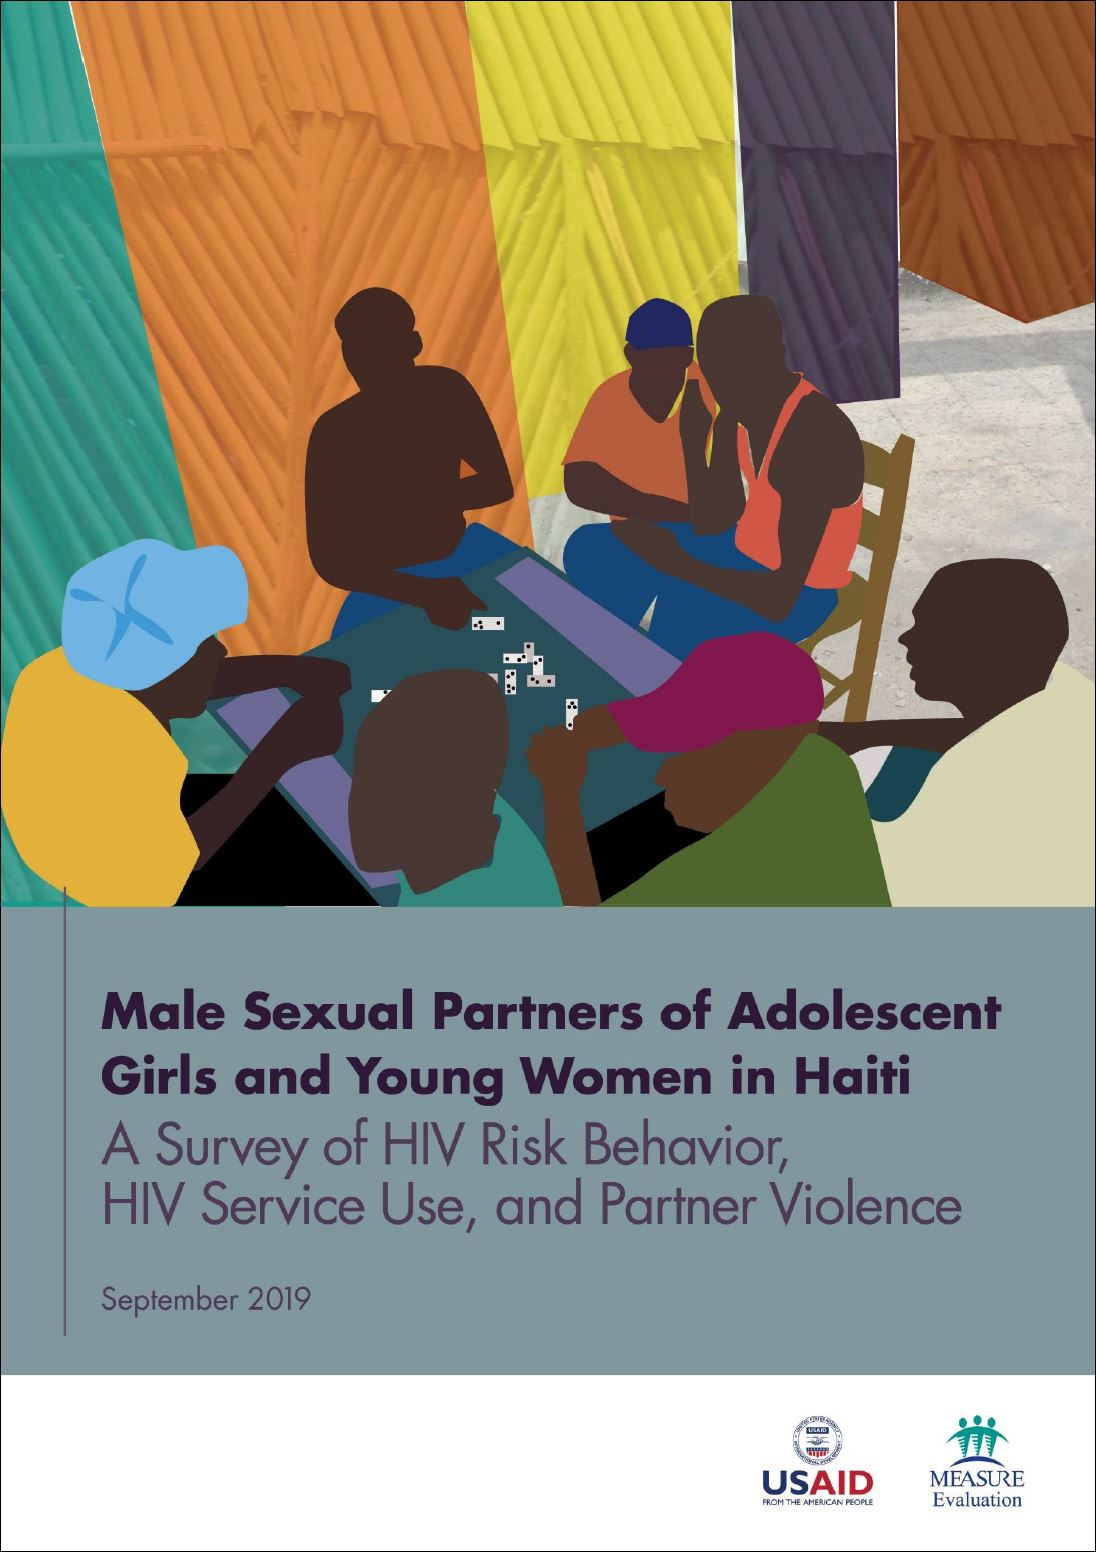 Male Sexual Partners of Adolescent Girls and Young Women in Haiti: A Survey of HIV Risk Behavior